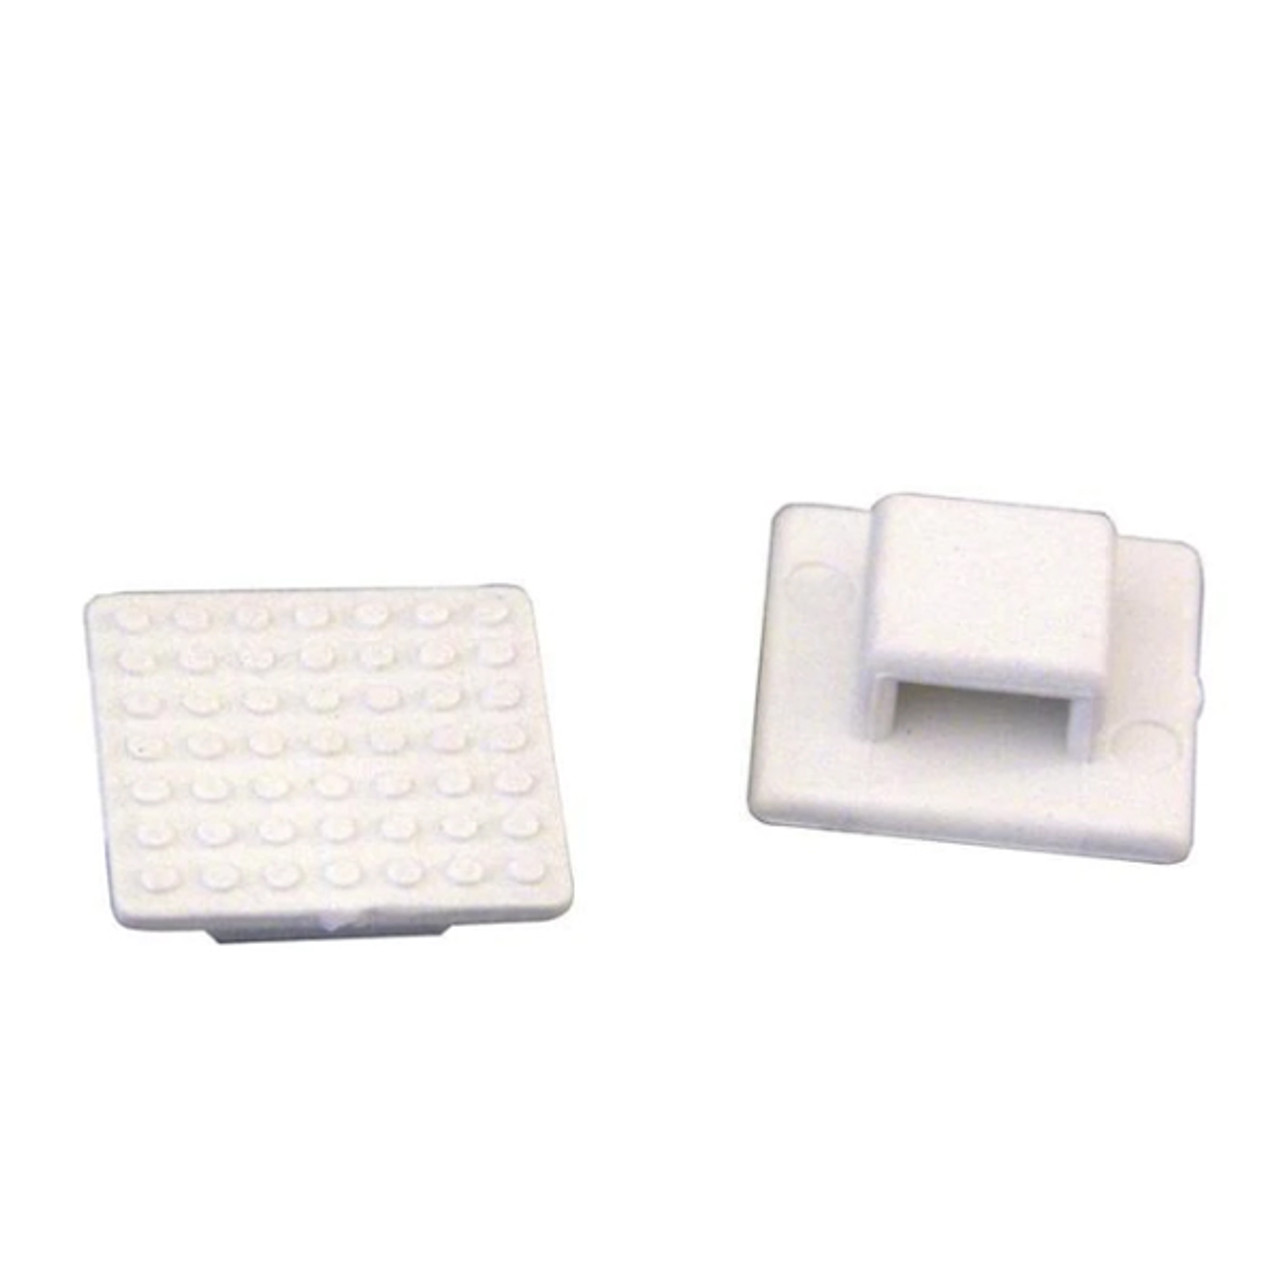 (803900) Small White Tie Mount -  pack of 10